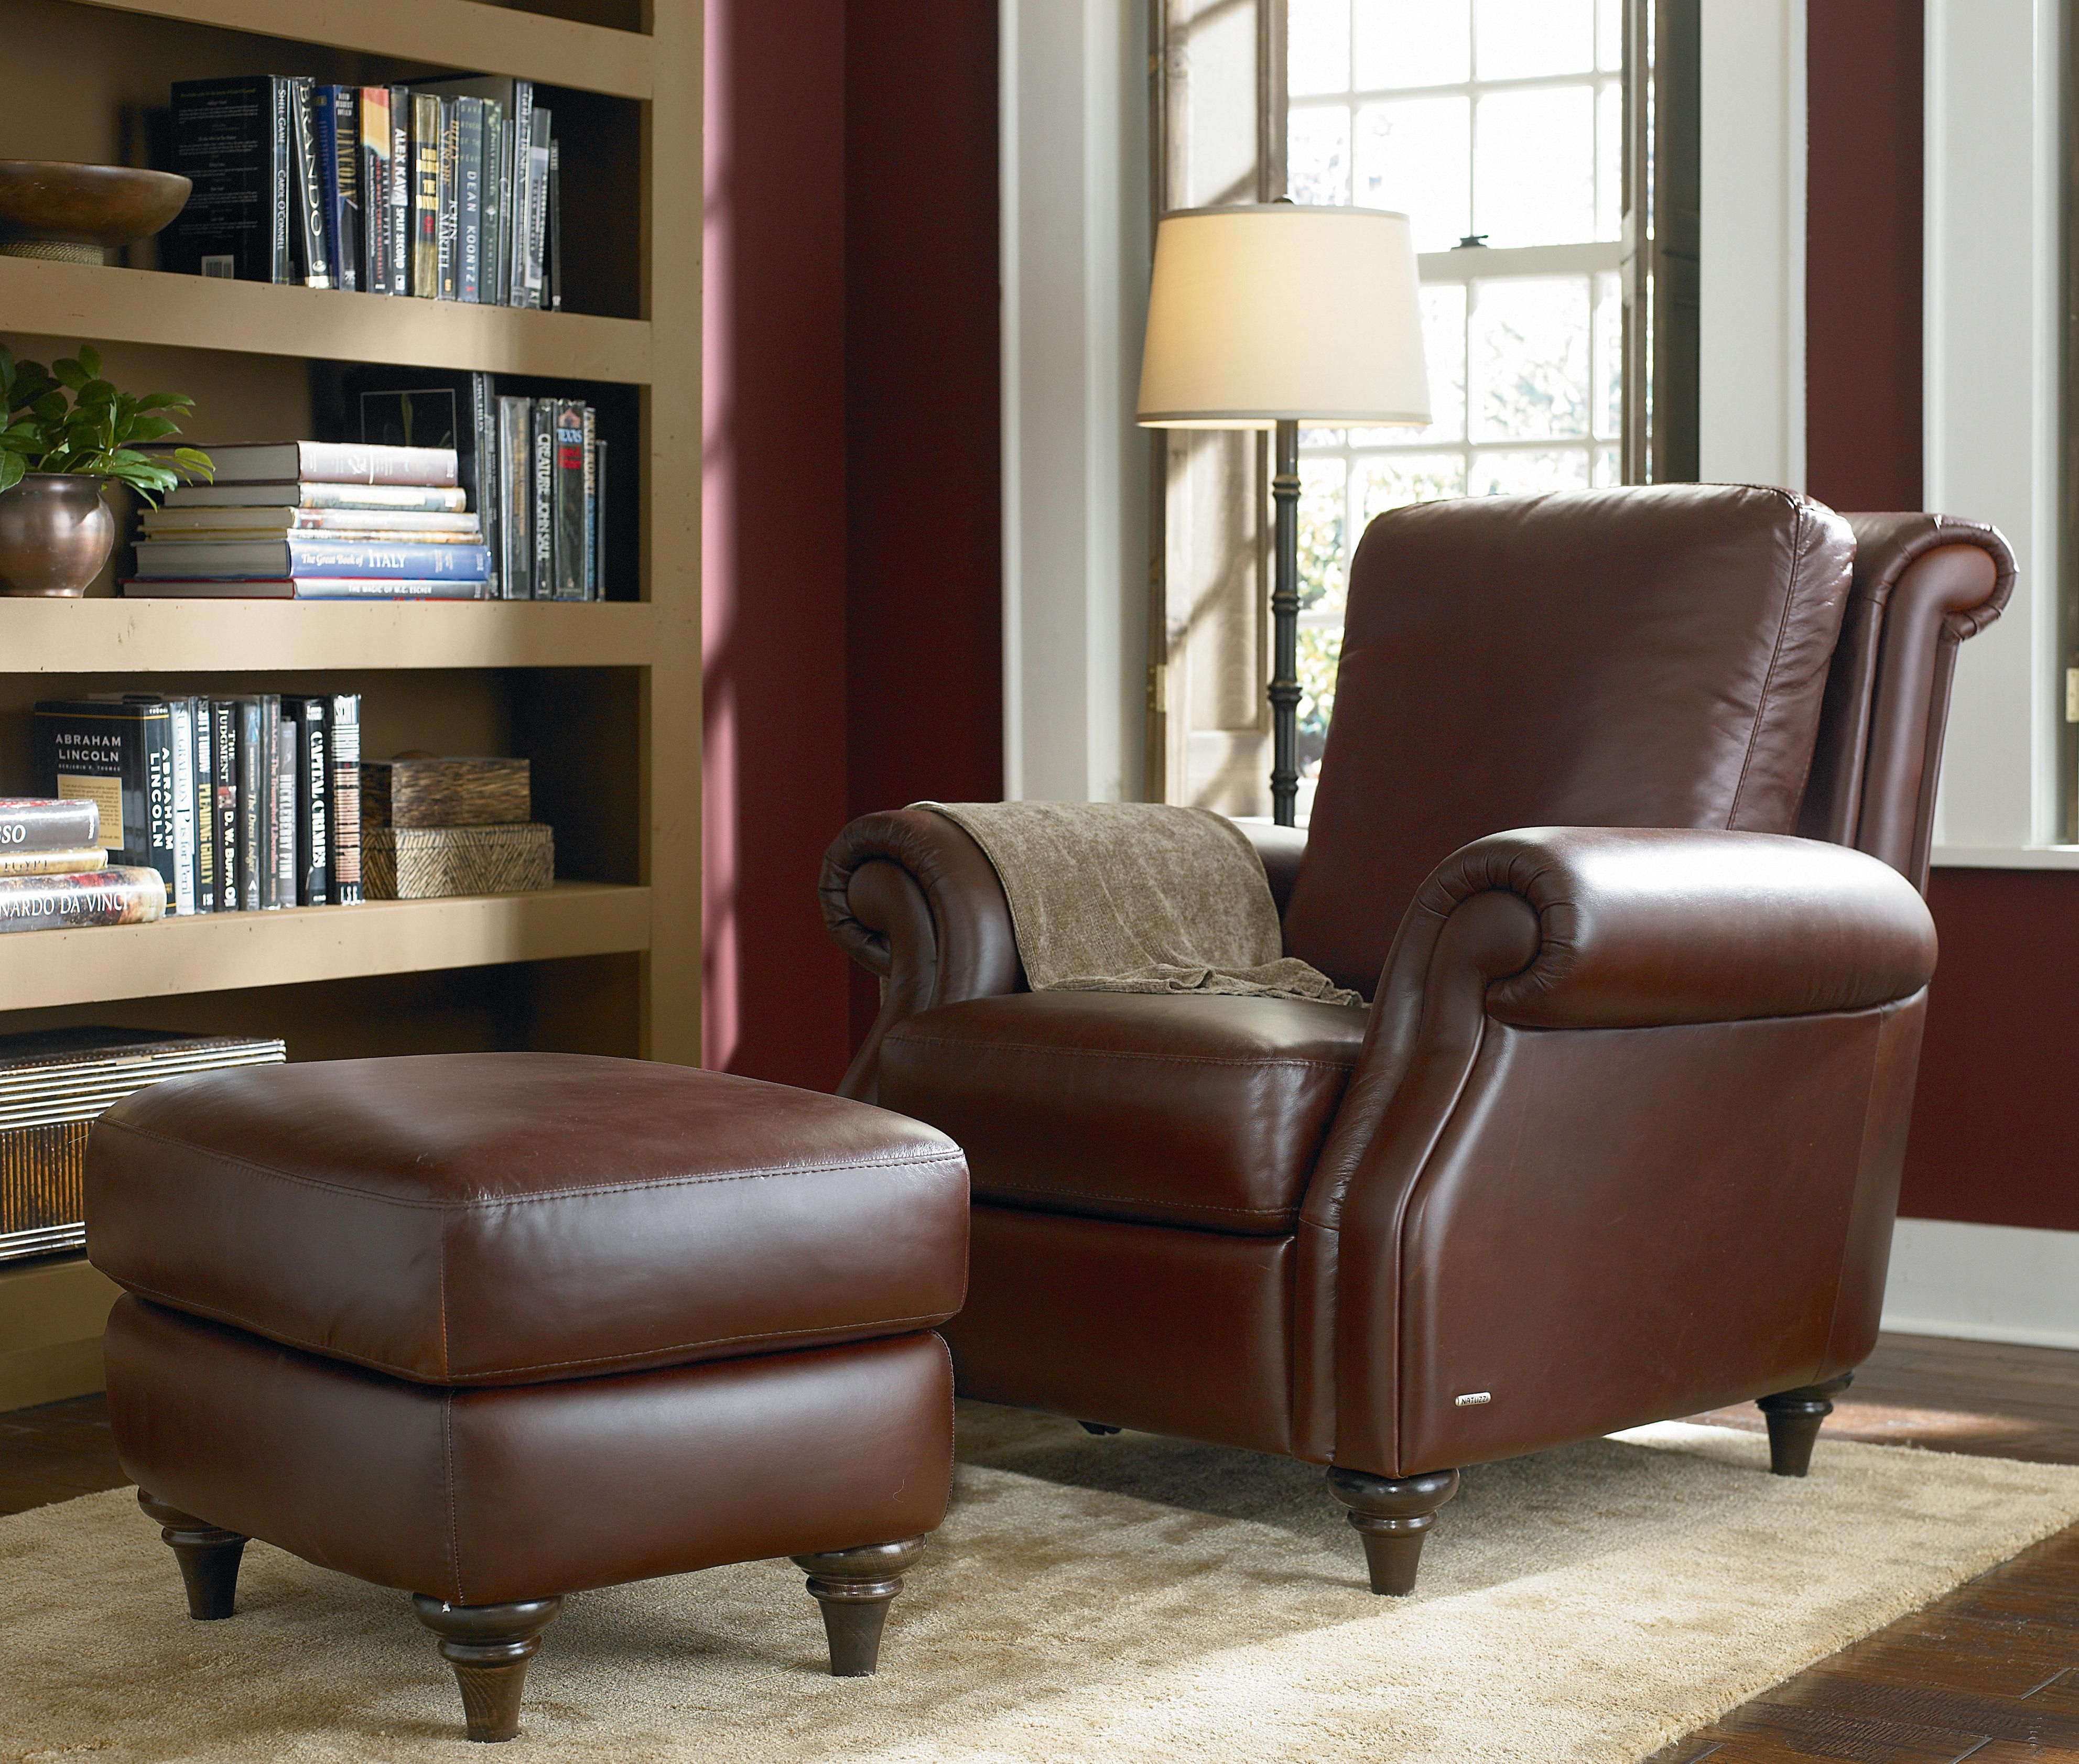 Ordinaire A297 Leather Recliner And Ottoman By Natuzzi Editions